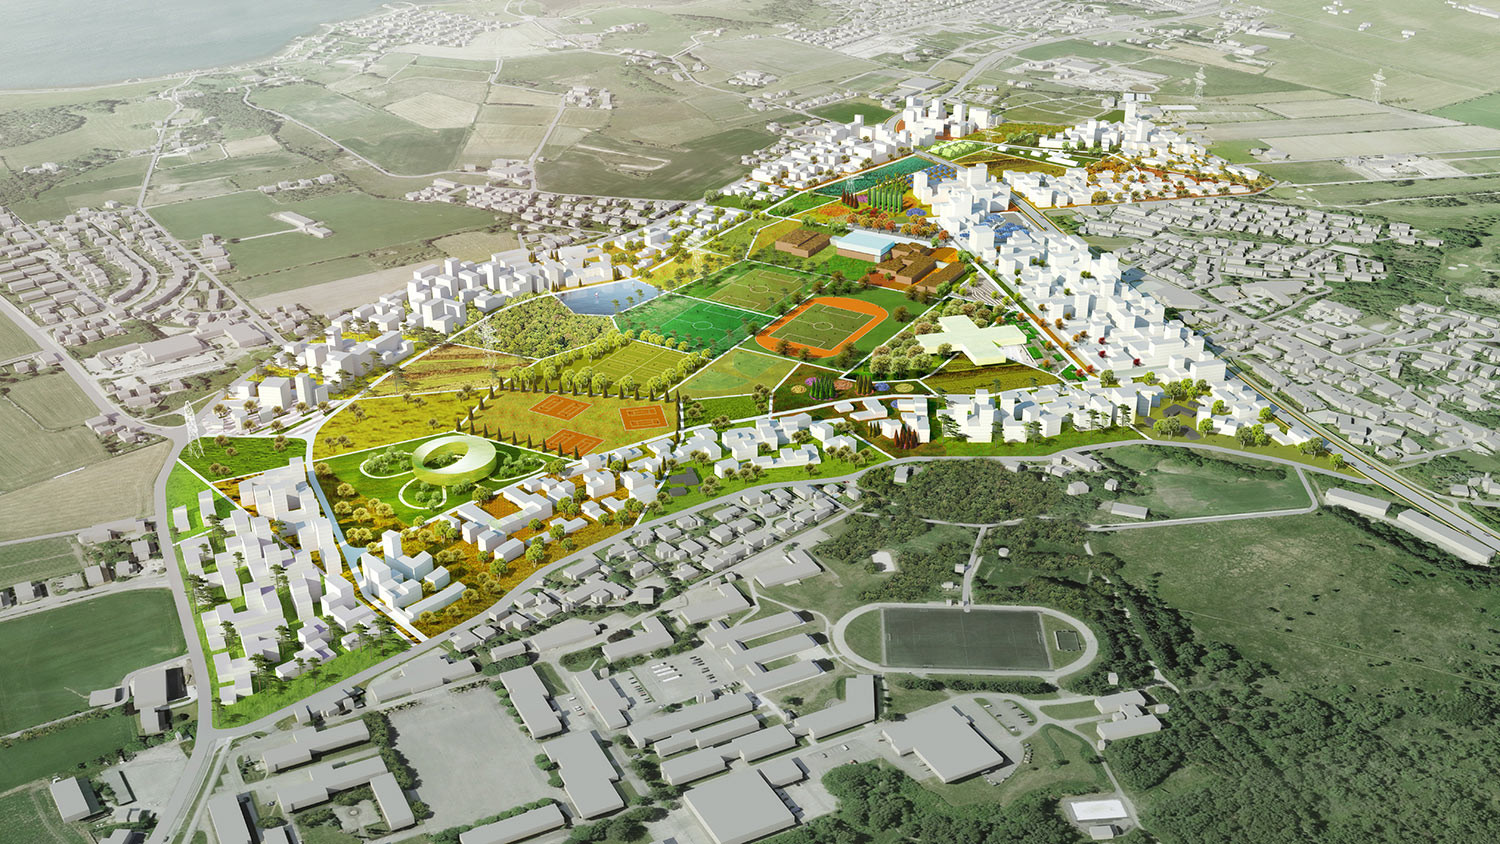 Madla-Revheim Masterplan Proposal / MVRDV + Space Group, © MVRDV + Space Group